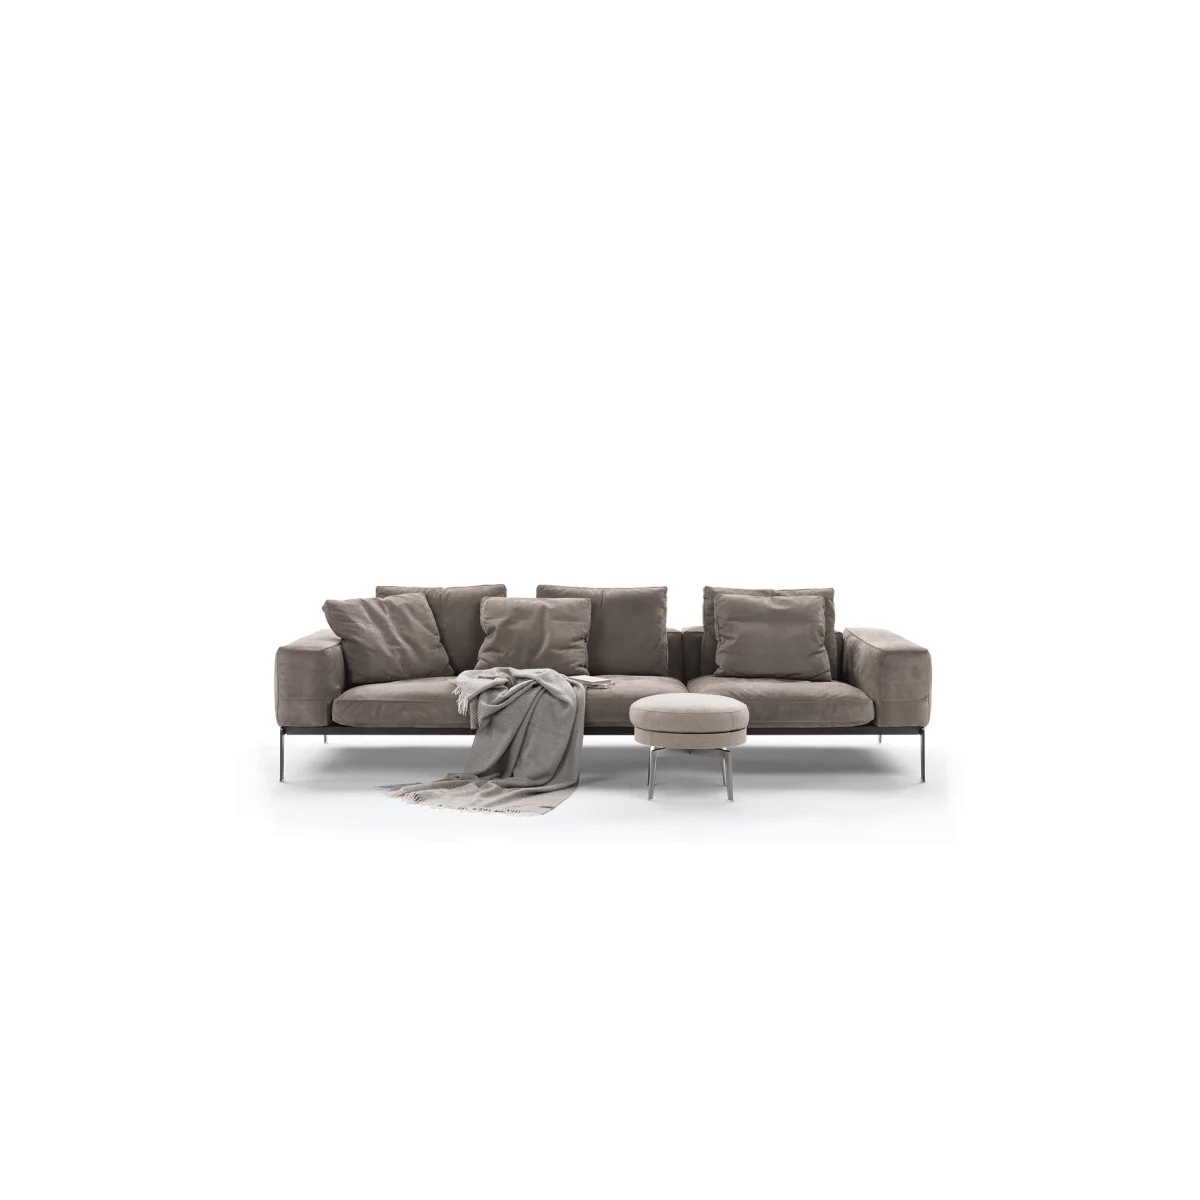 Antonio Citterio City Sofa Lifesteel 3 Seater Sofa Sable 1640 Black Chrome 240cm By